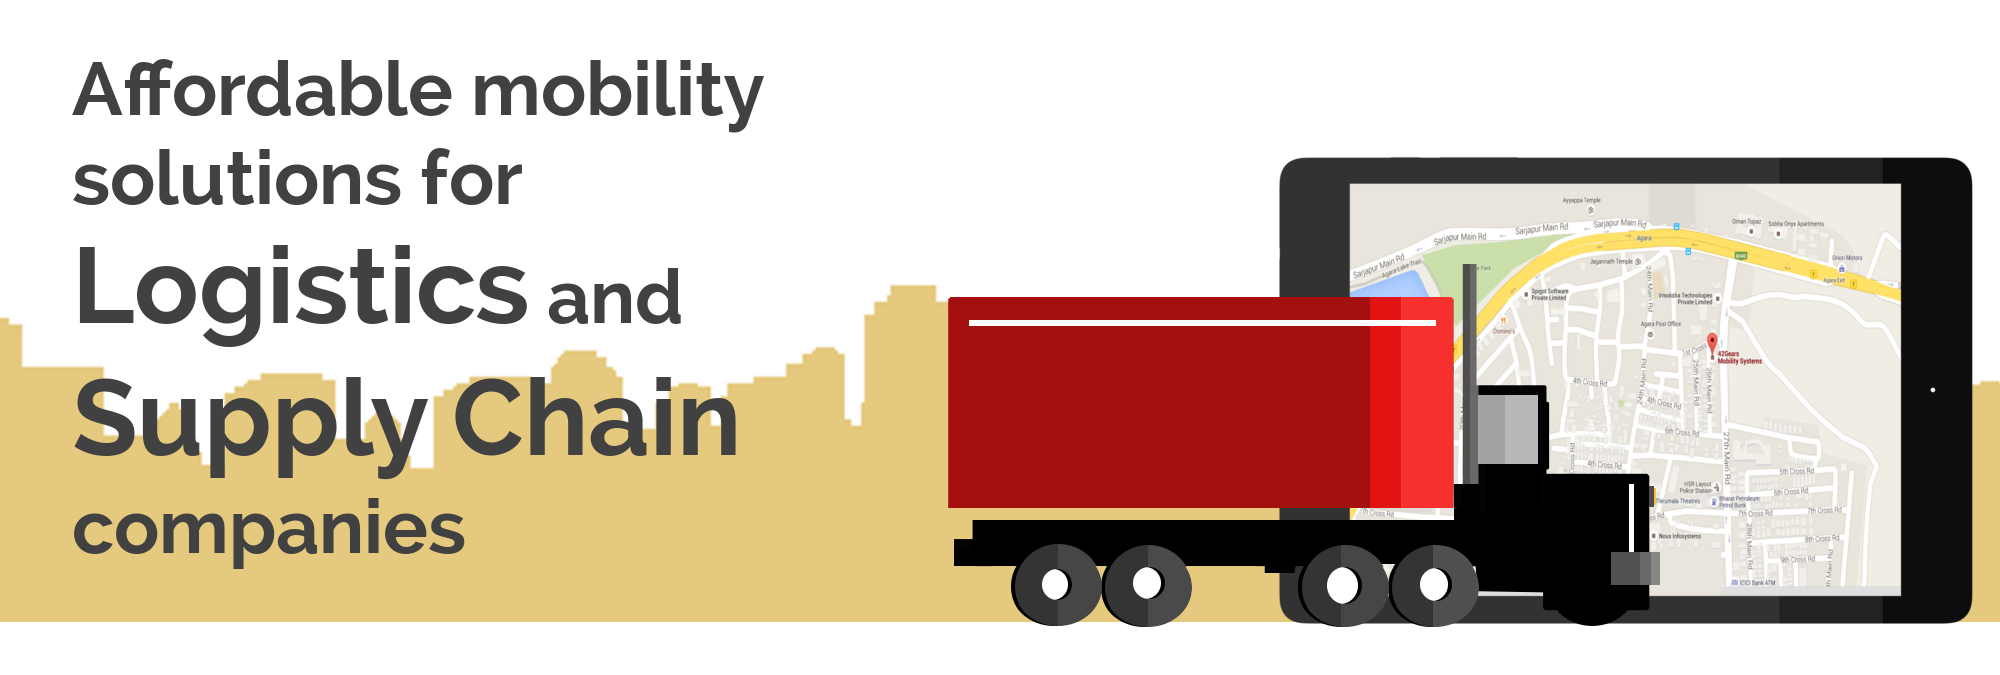 Affordable mobility solutions for Logistics and Supply Chain companies